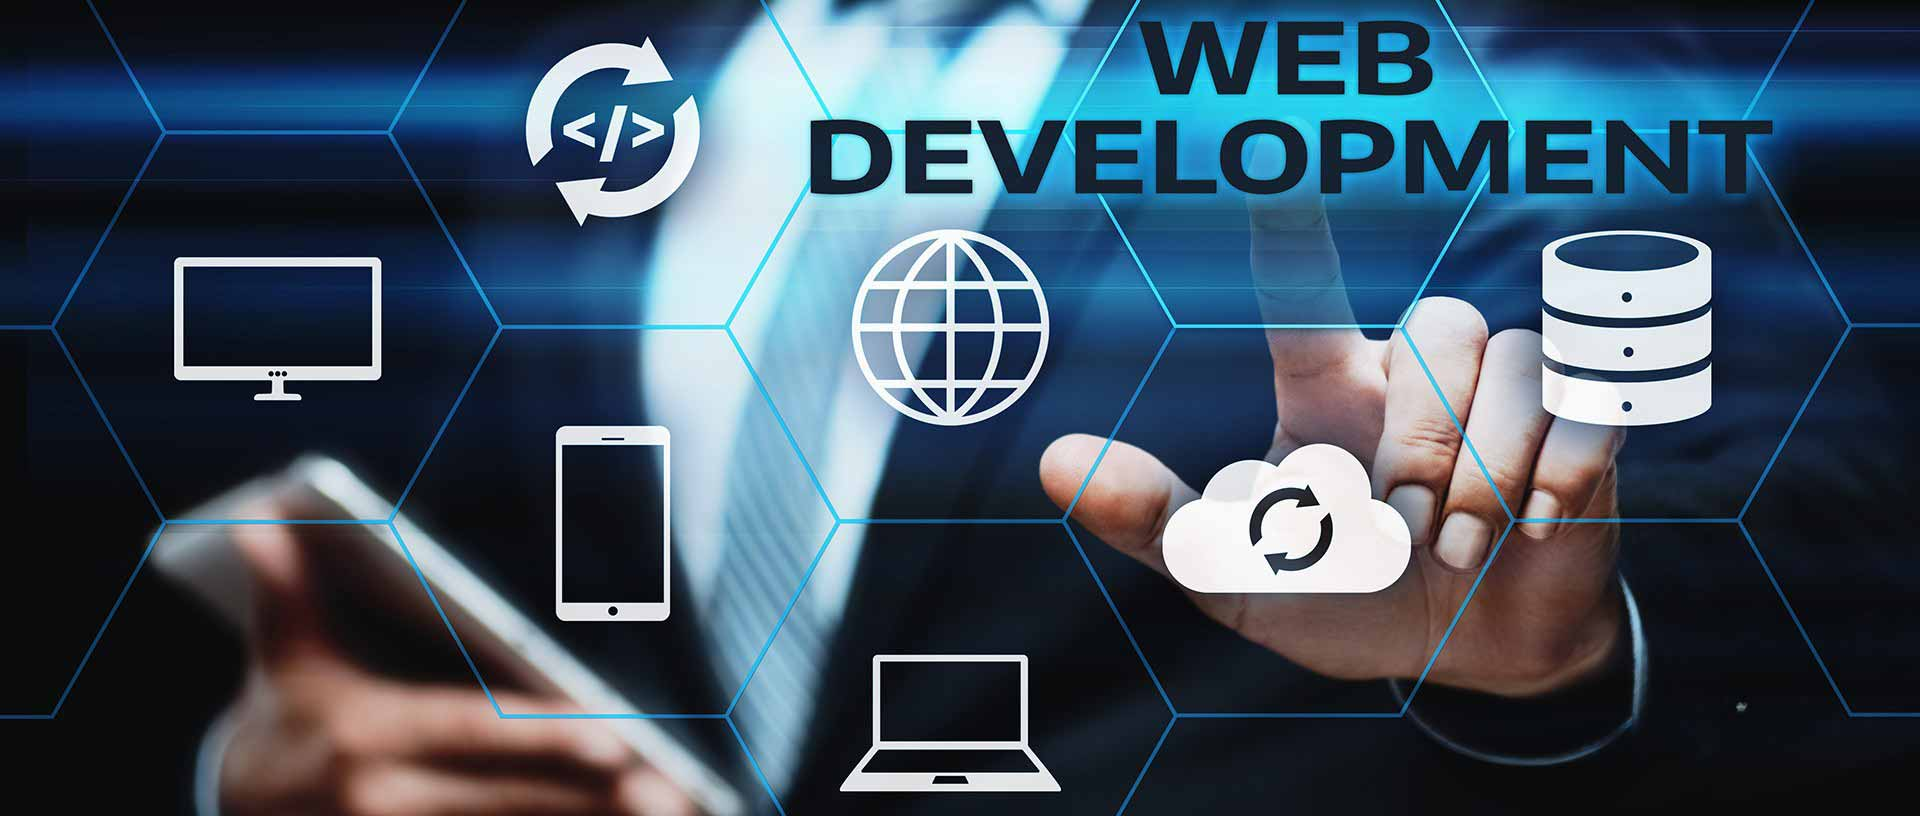 Web Development by TechSquad